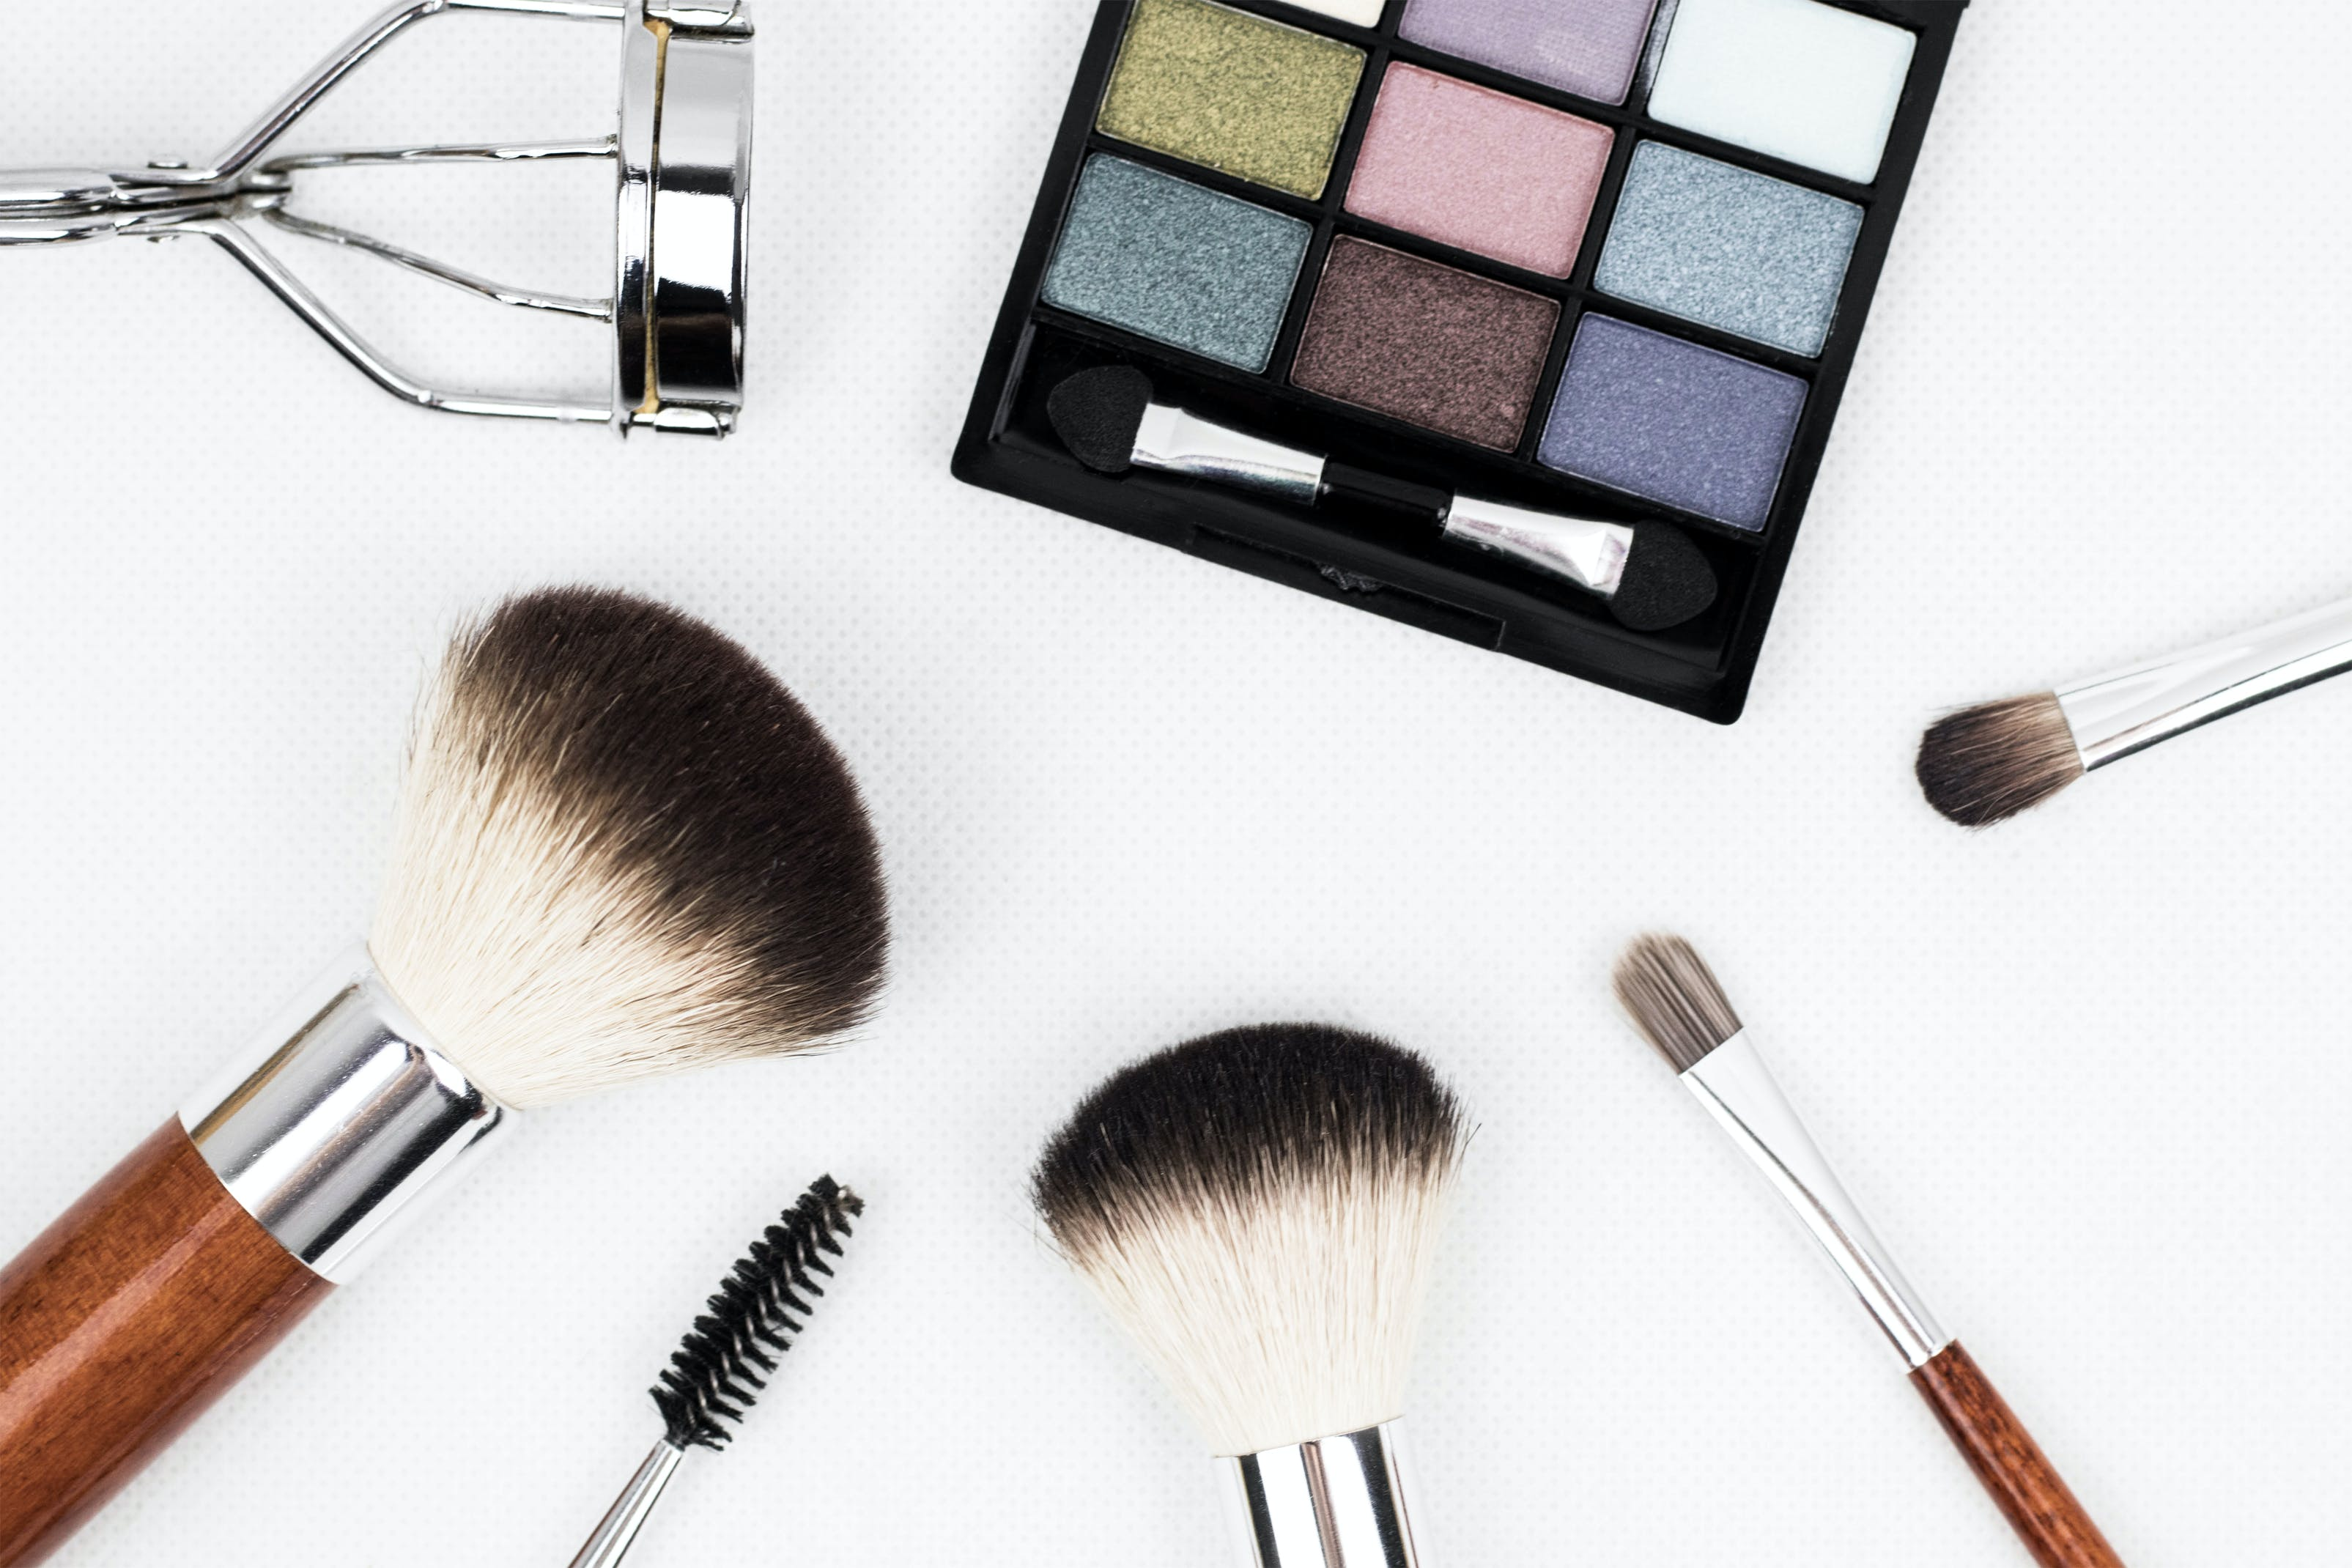 Five Beauty Brands Are Nailing Instagram